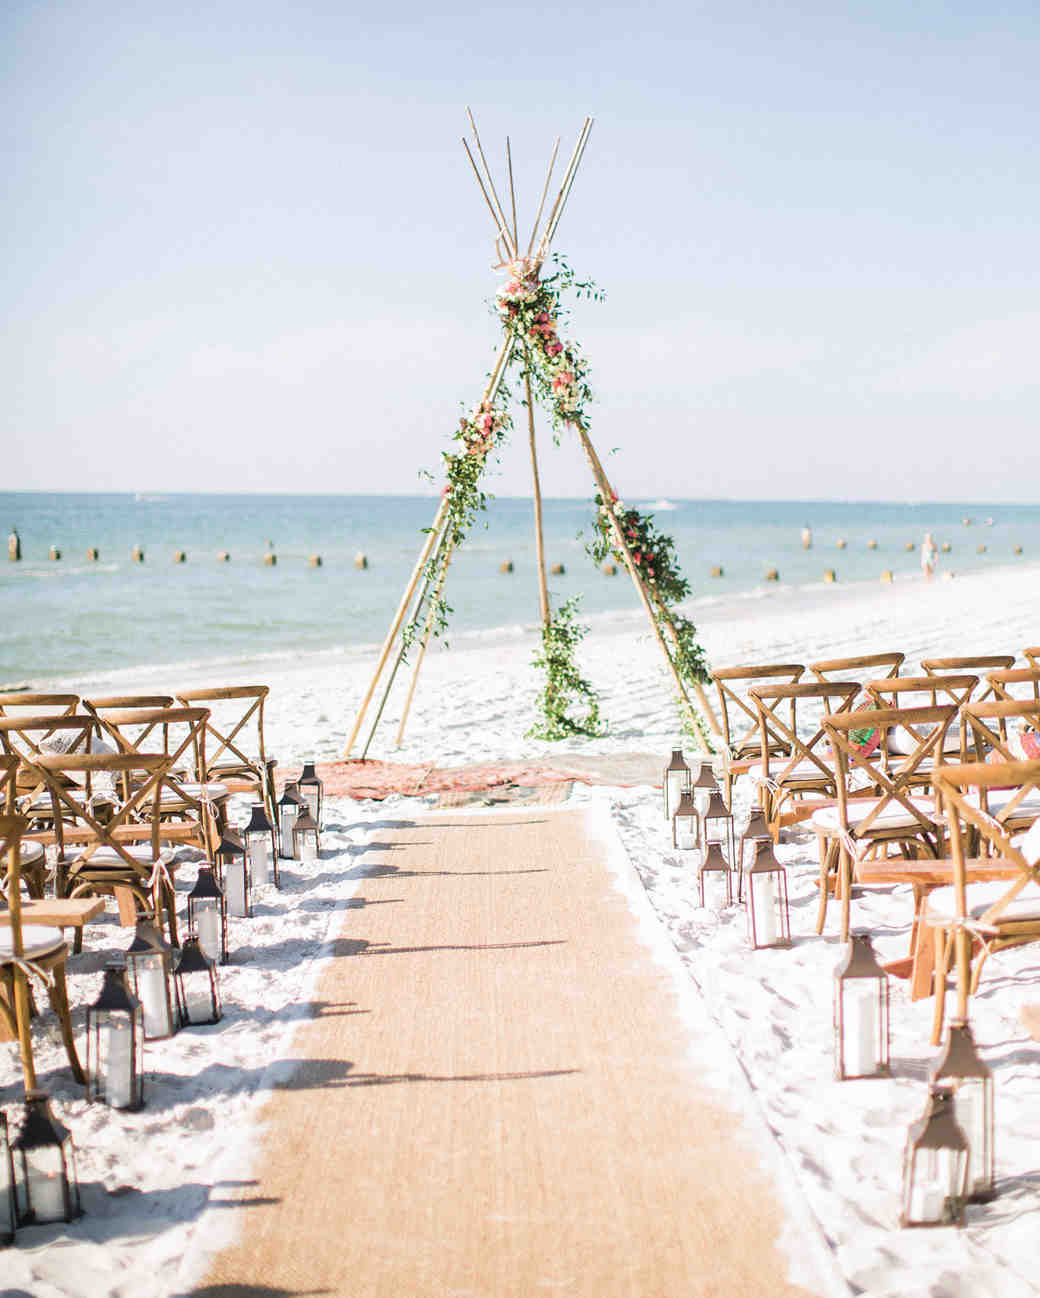 Belongil Beach Wedding Ceremony: 22 Ideas For An Elevated Beach Wedding